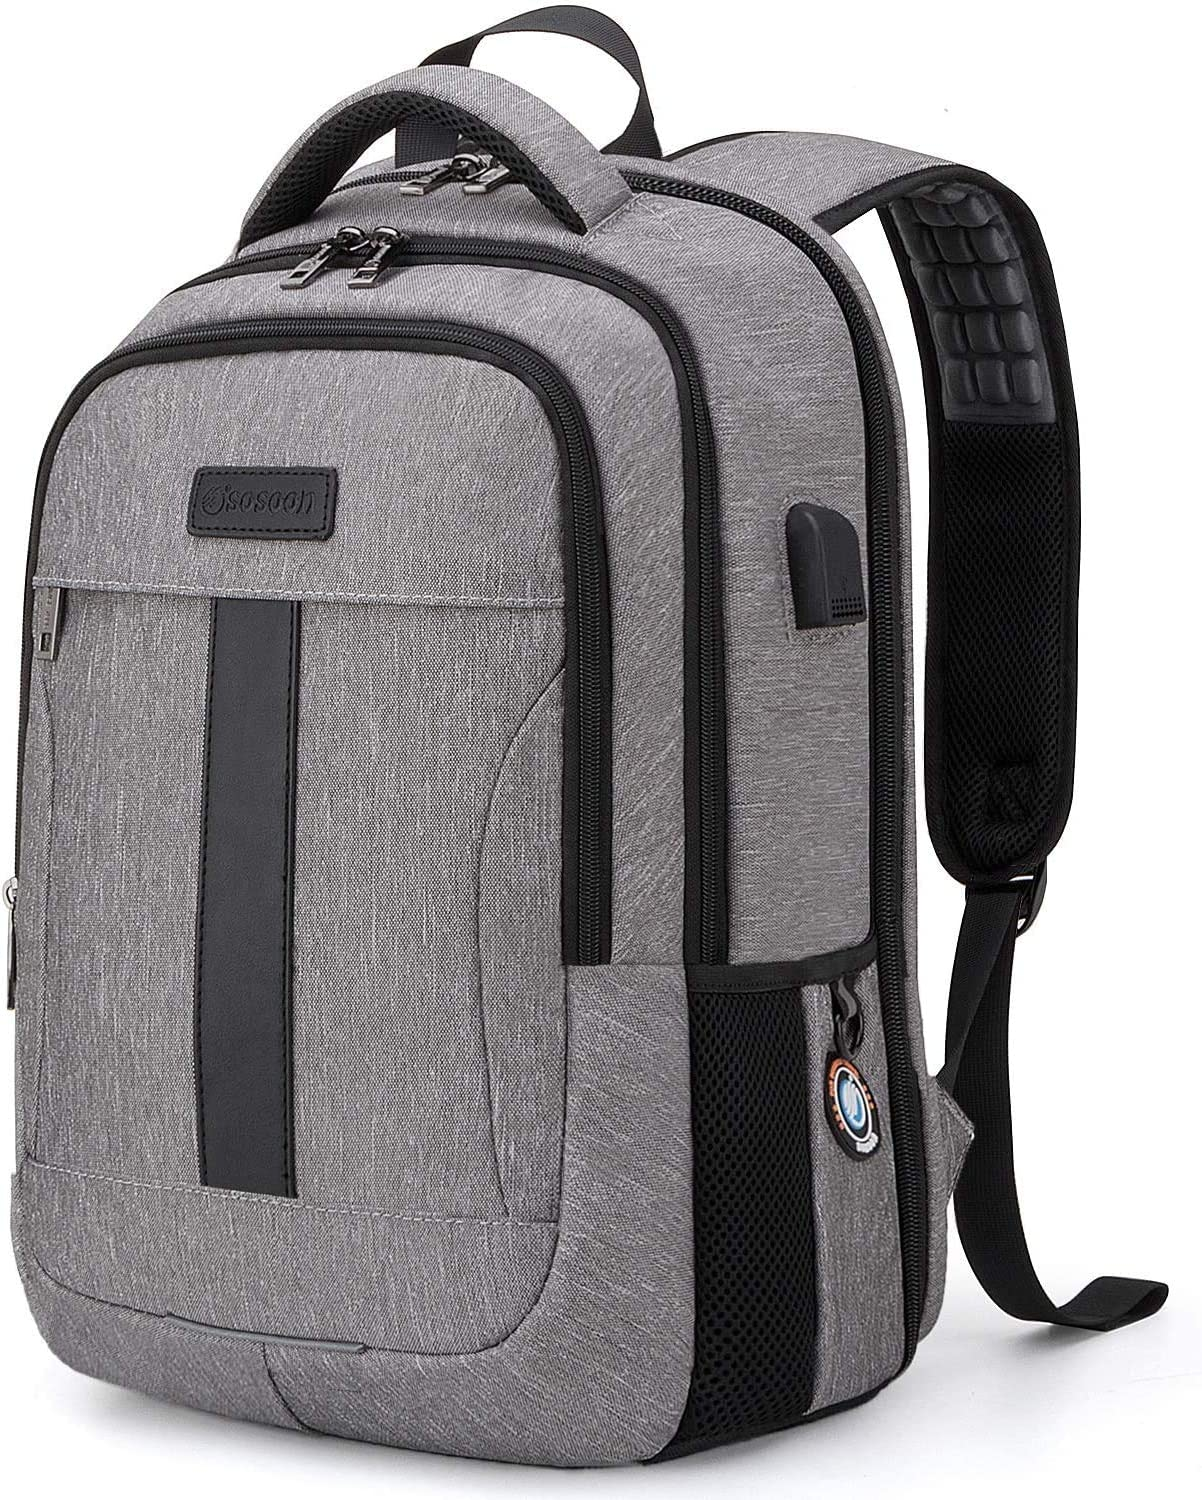 Business 15.6Inch Laptop Backpack, Anti theft School Bookbag for Girls/Boys Grey